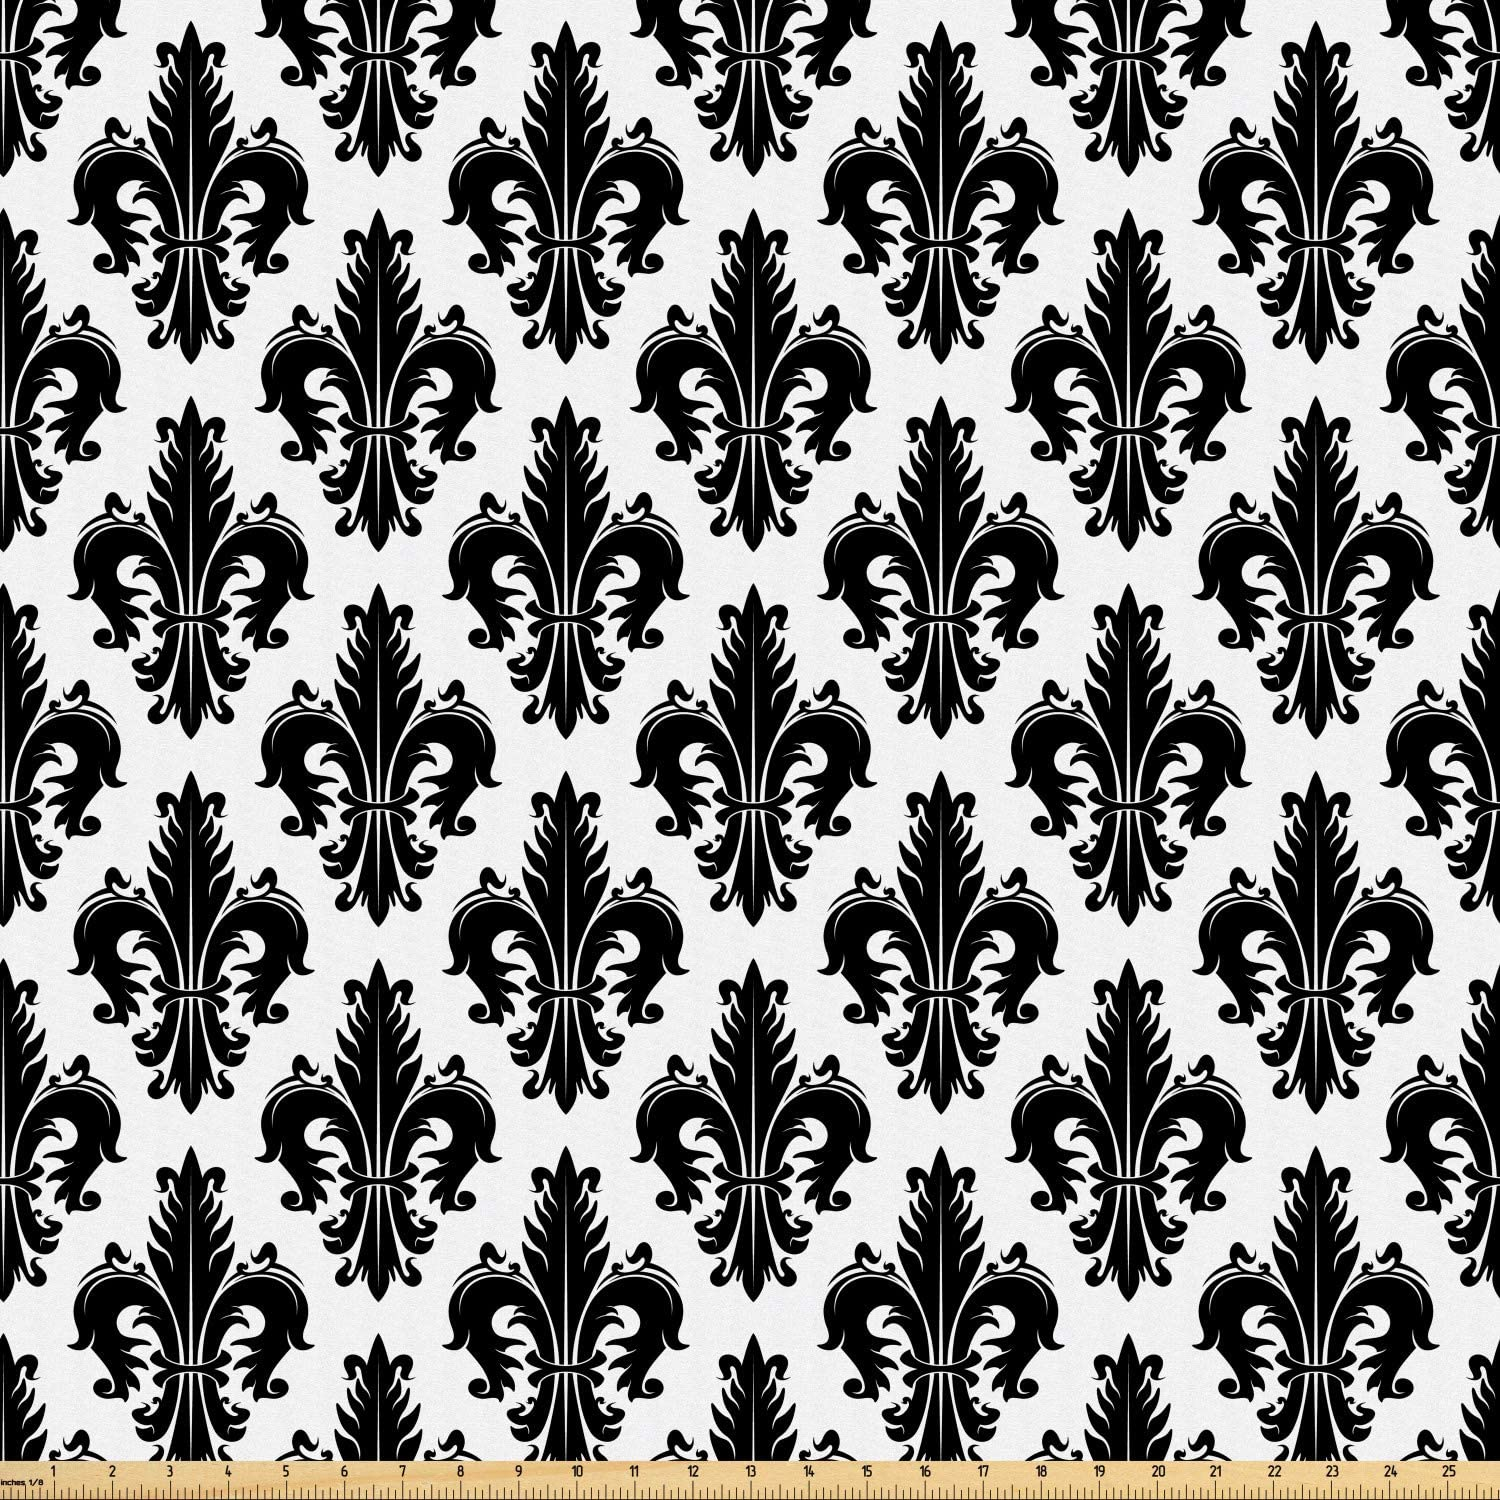 Ambesonne Fleur De Lis Fabric by The Yard, Monochrome Royal Lily Pattern Victorian Inspiration Ornamental Vintage Design, Microfiber Fabric for Arts and Crafts Textiles & Decor, 1 Yard, Black White